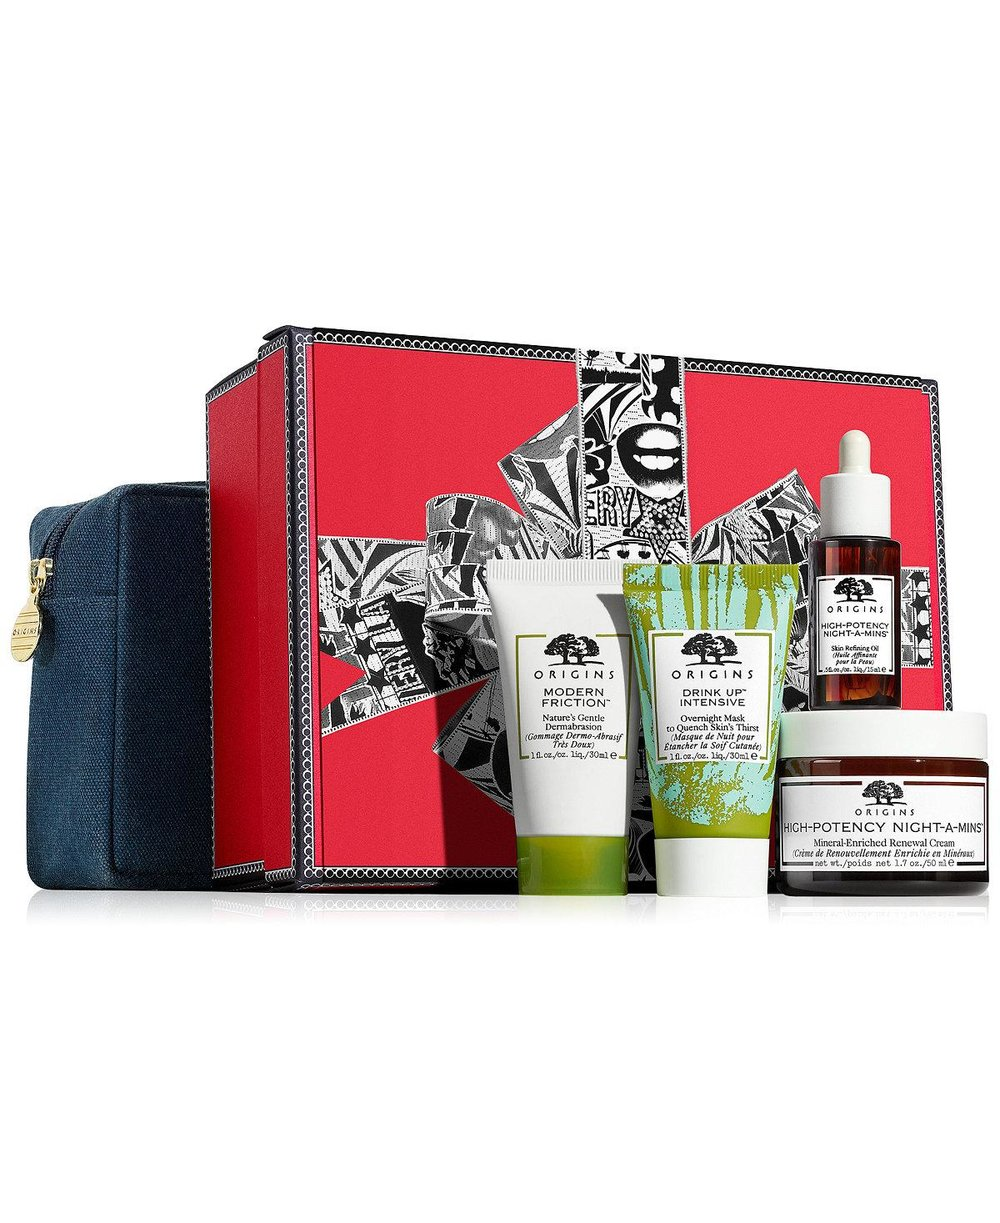 Origins Five-Piece Rest & Renew Gift Set - $40 ($84 value)